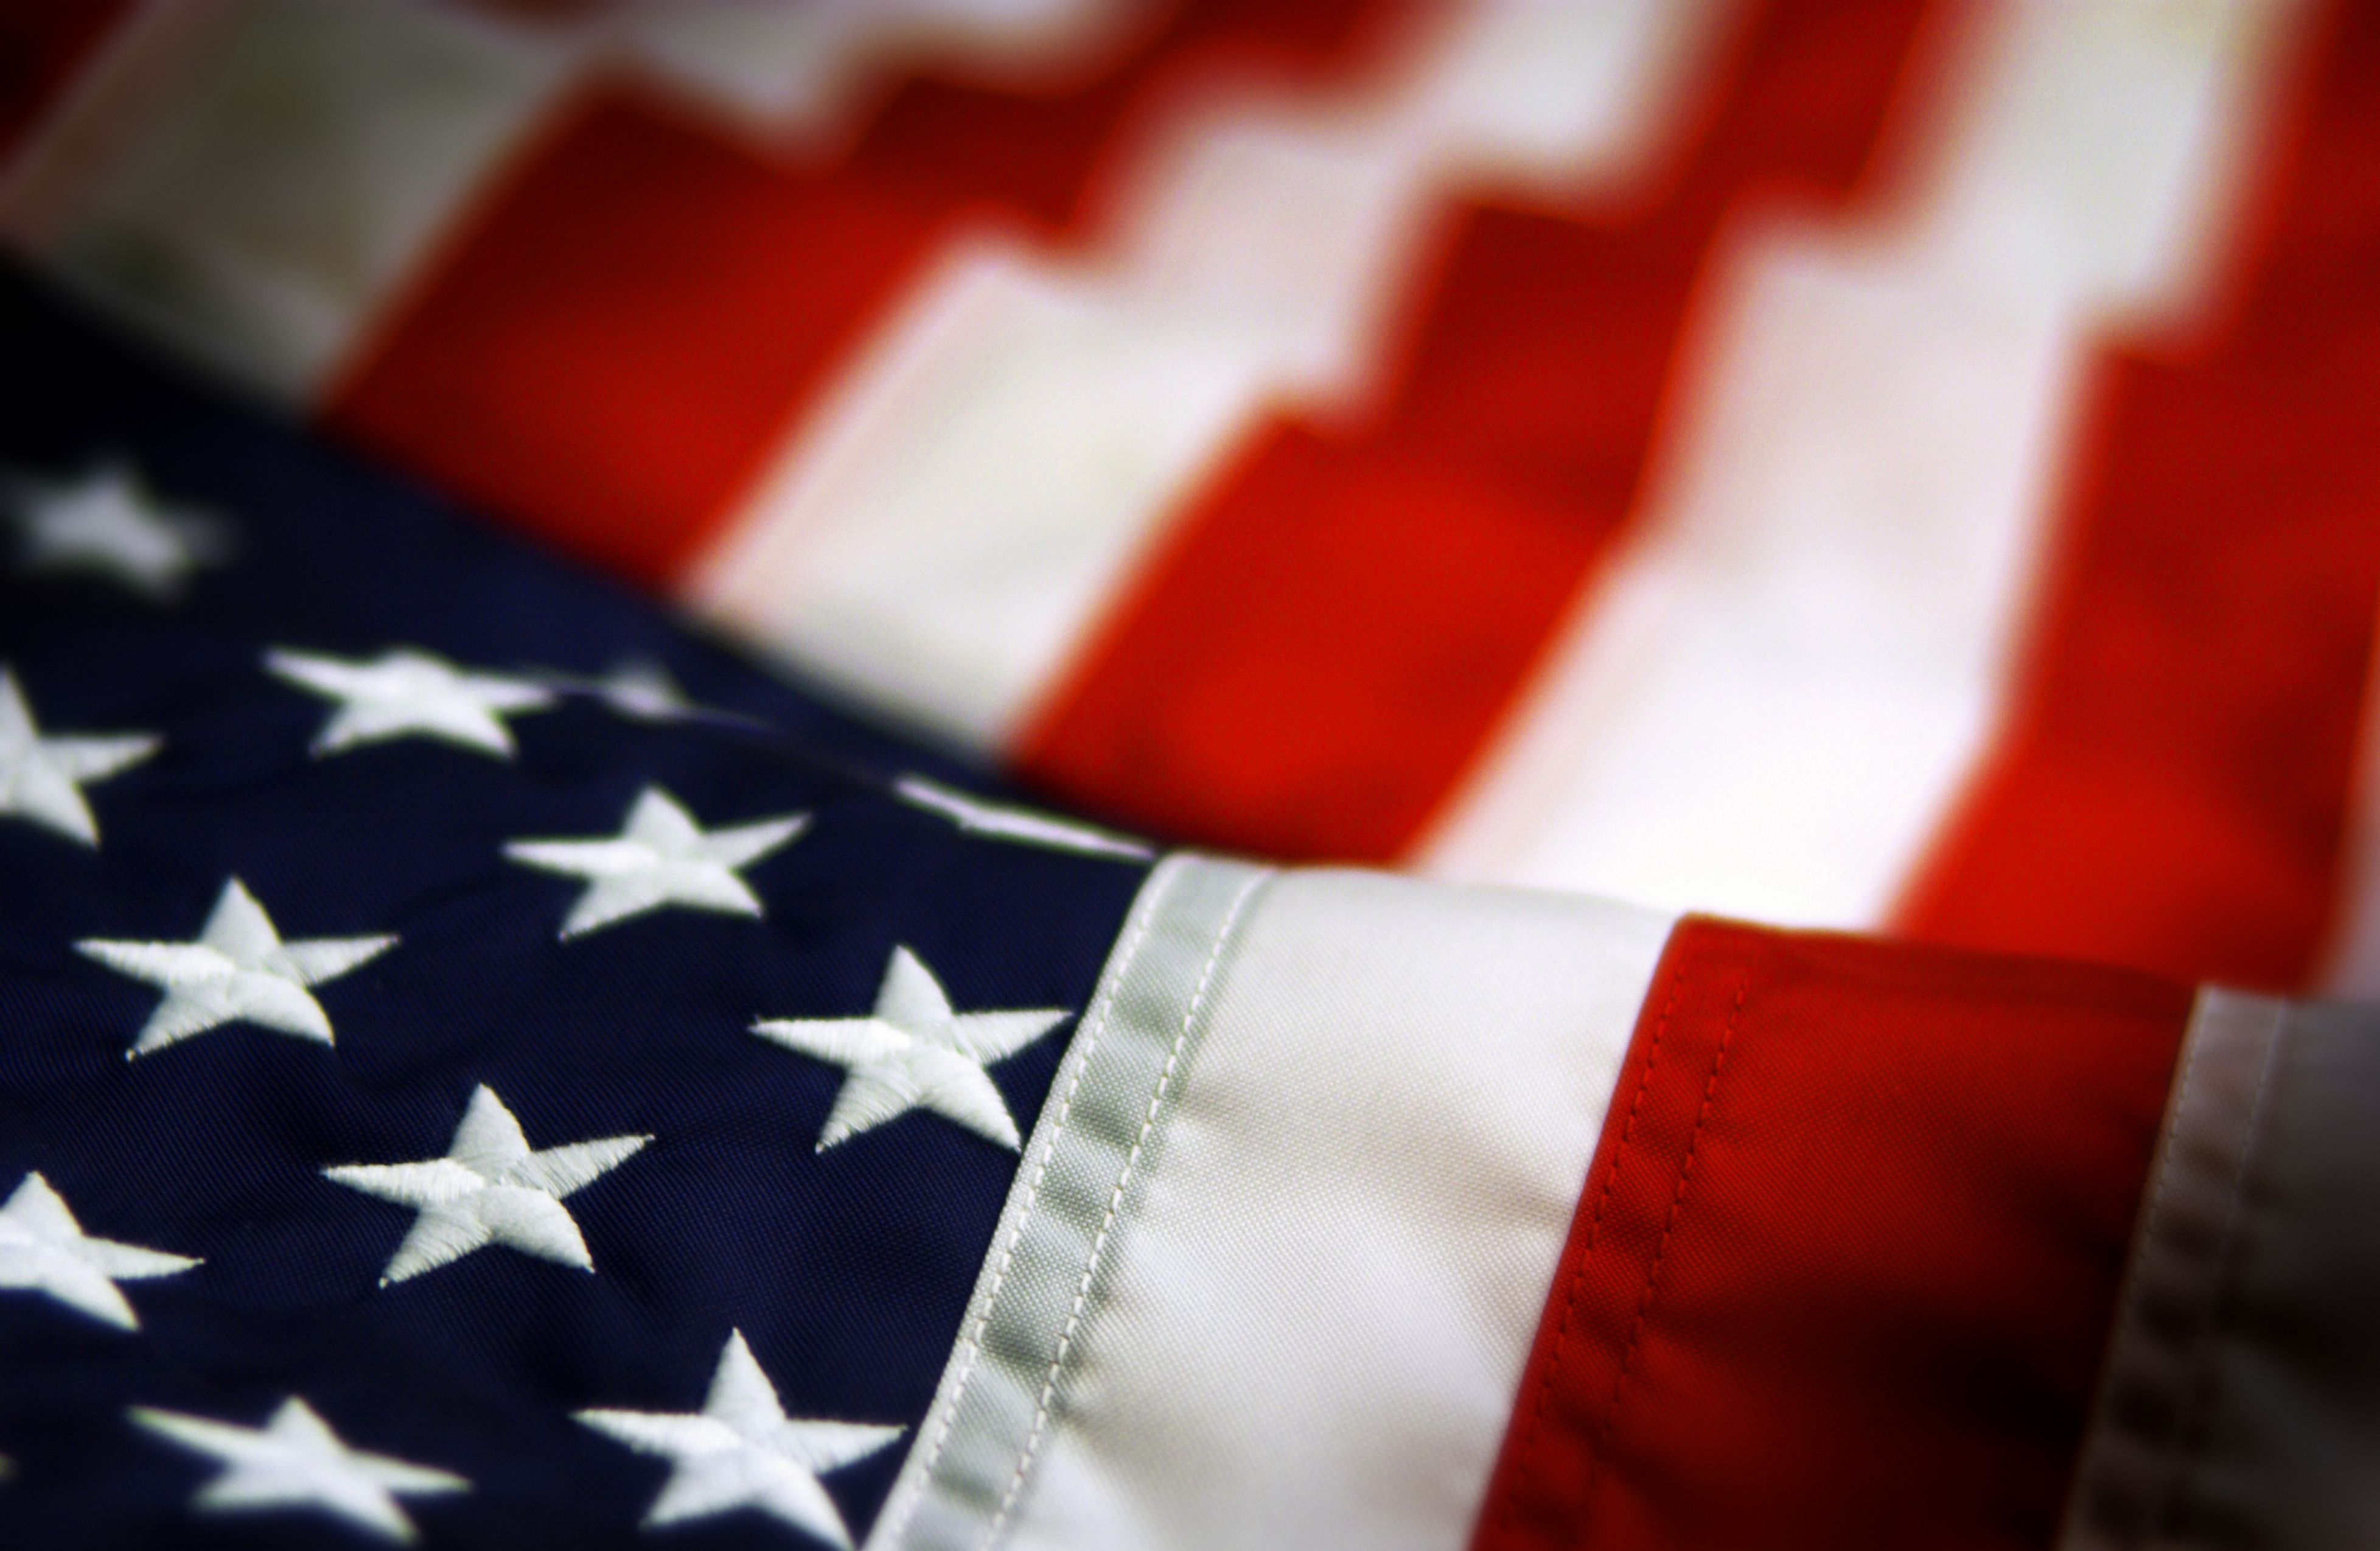 Hd wallpaper usa flag - American Flag Hd Wallpapers Backgrounds Wallpaper